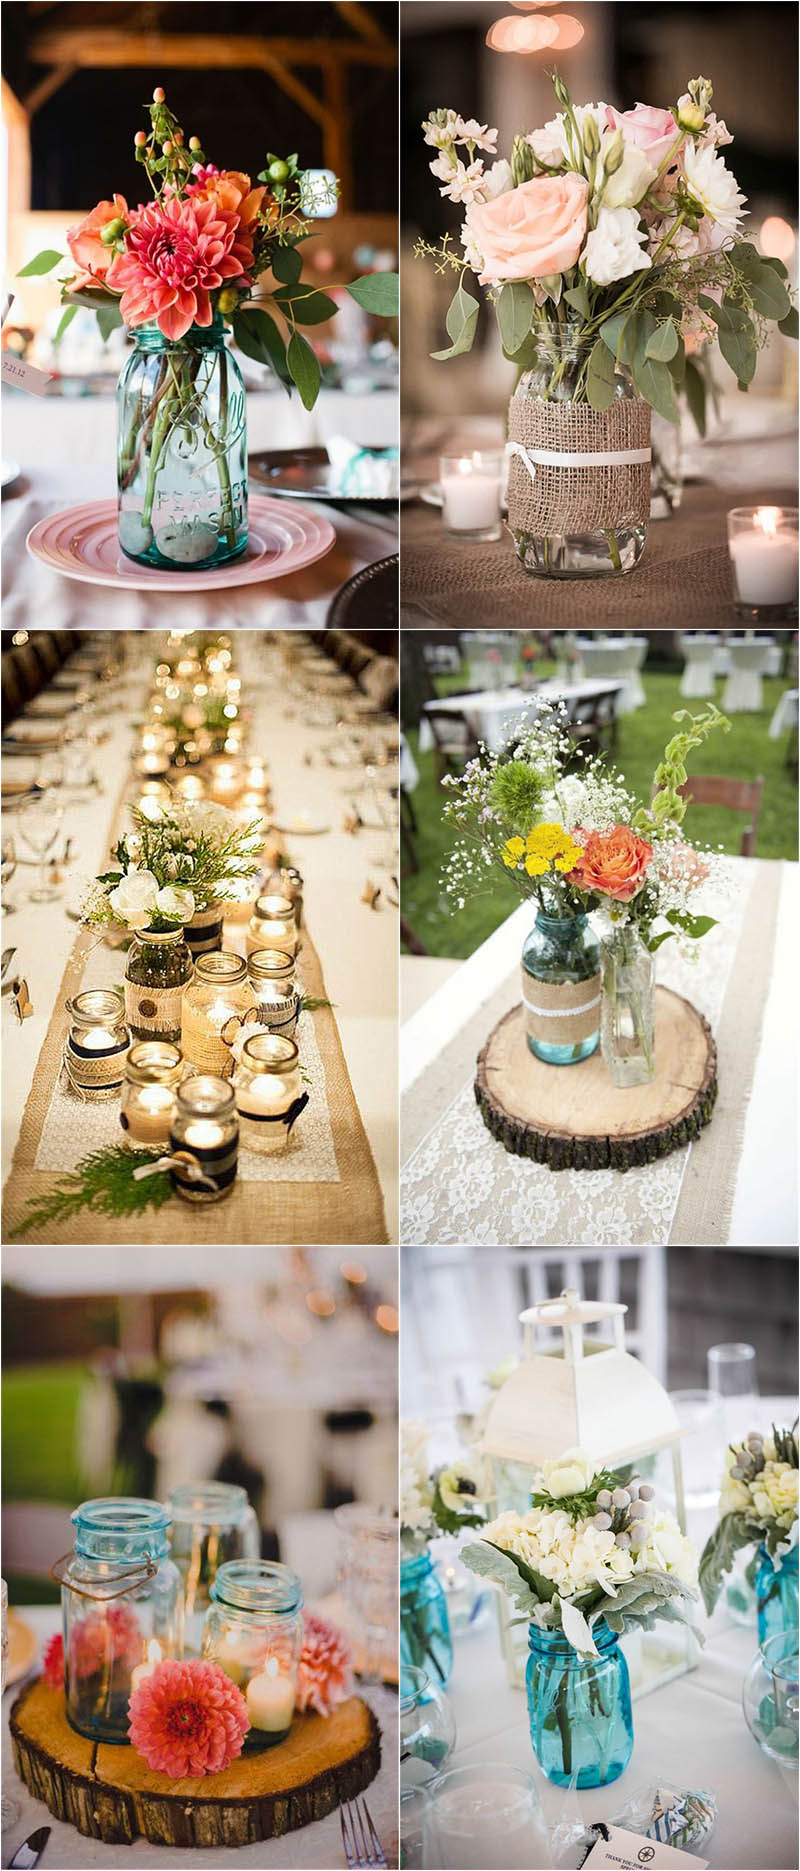 Mason Jar Wedding Centerpieces.Top 5 Stylish Wedding Centerpieces Ideas For 2018